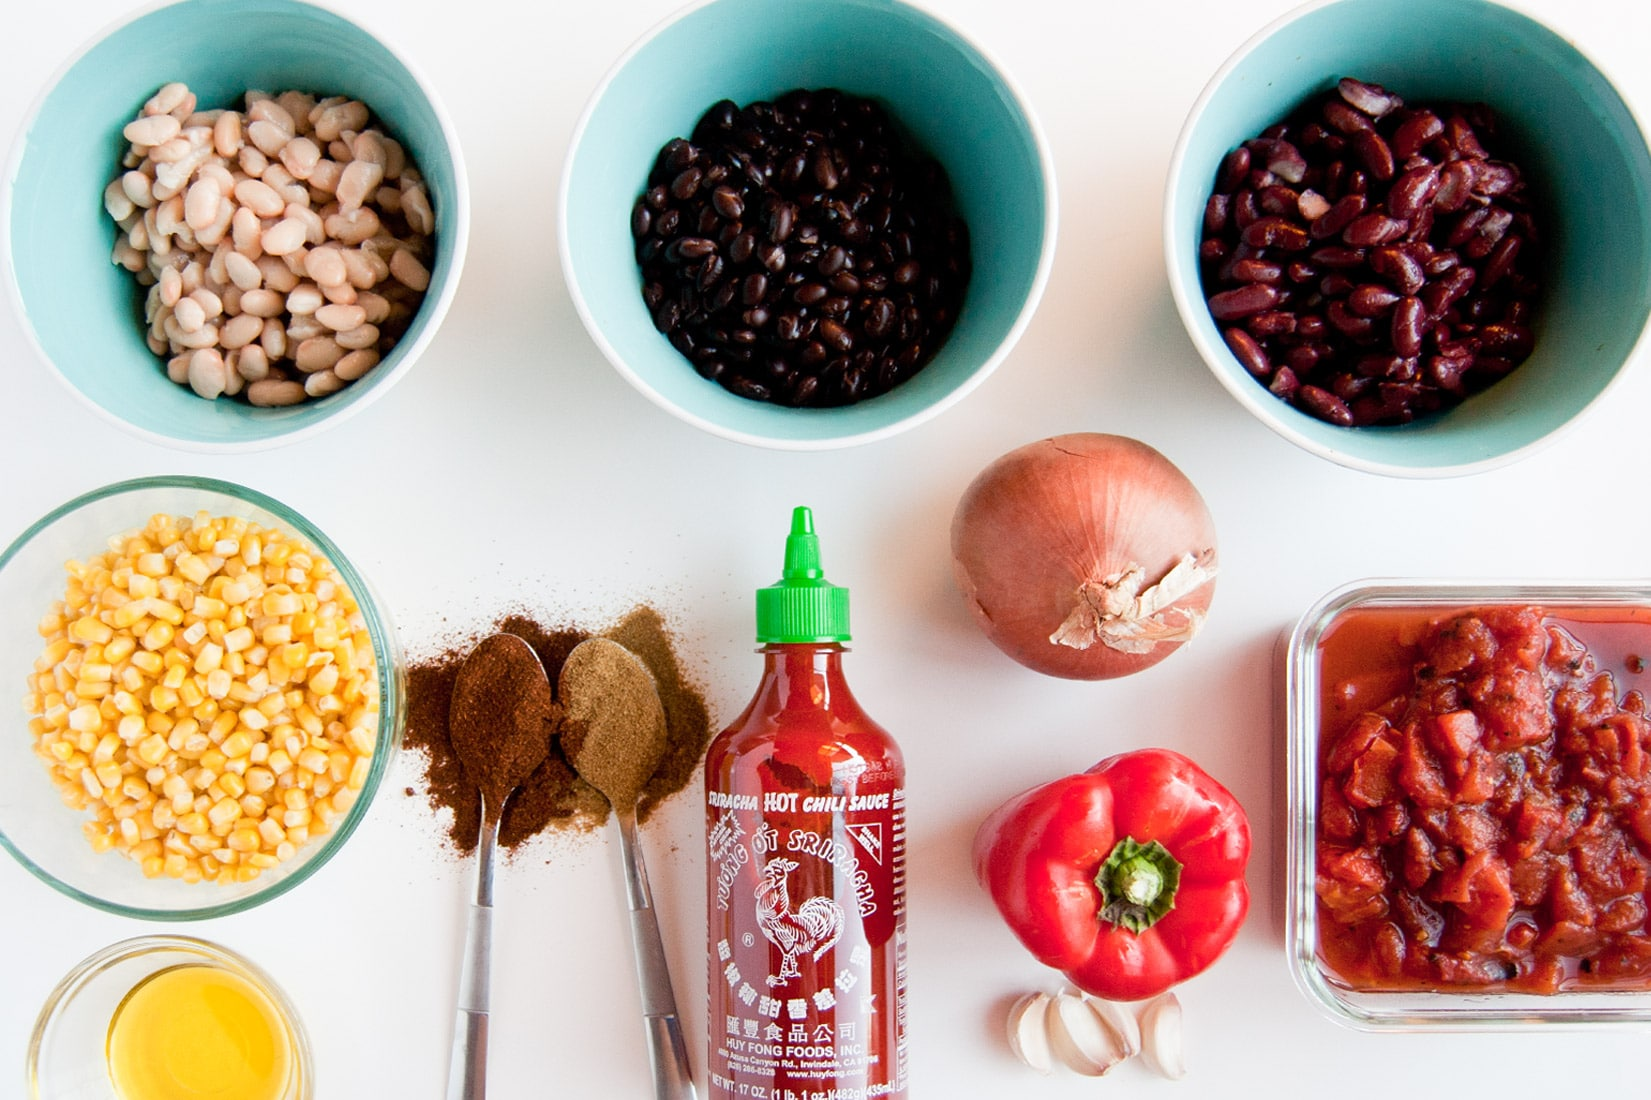 Vegan Sriracha Chili -- This hearty chili is comforting on a cold day and makes a great wholesome plant based meal. | mindfulavocado